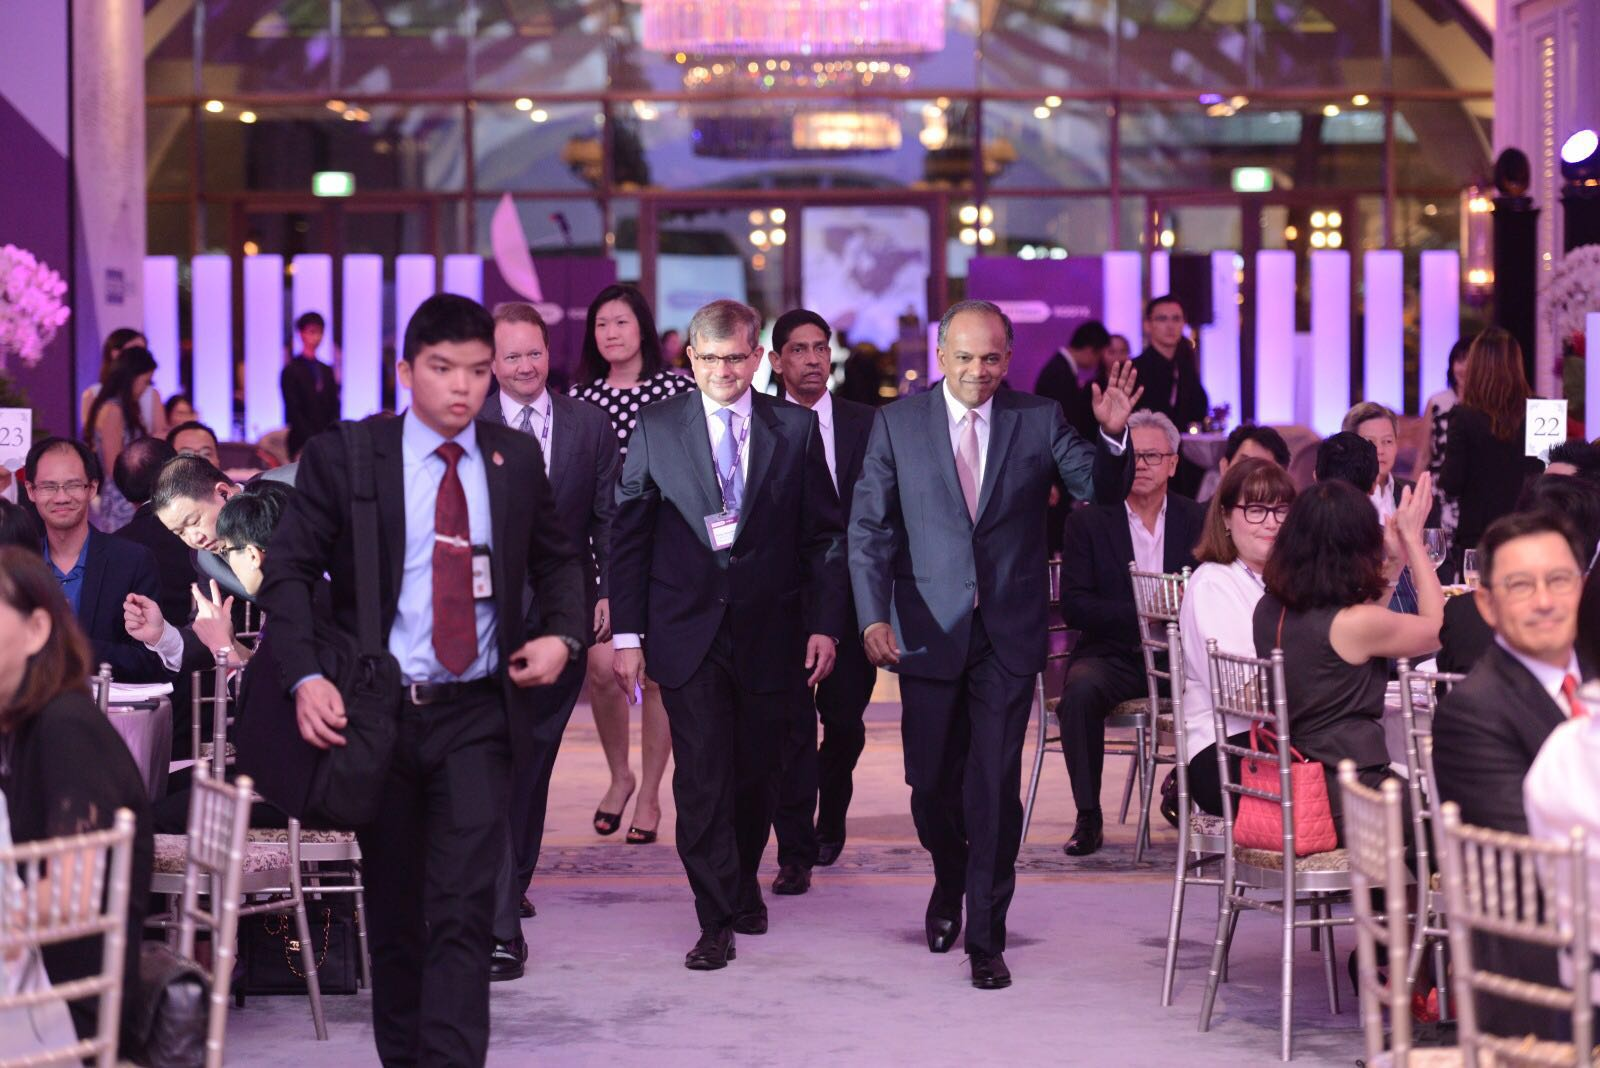 Dentons Global Chairman, Joe <p>Andrew and Philip Jeyaretnam, SC, Dentons Rodyk Regional CEO walking in with Guest-of-Honour, Minister of Home Affairs and Law, Mr K Shanmugam